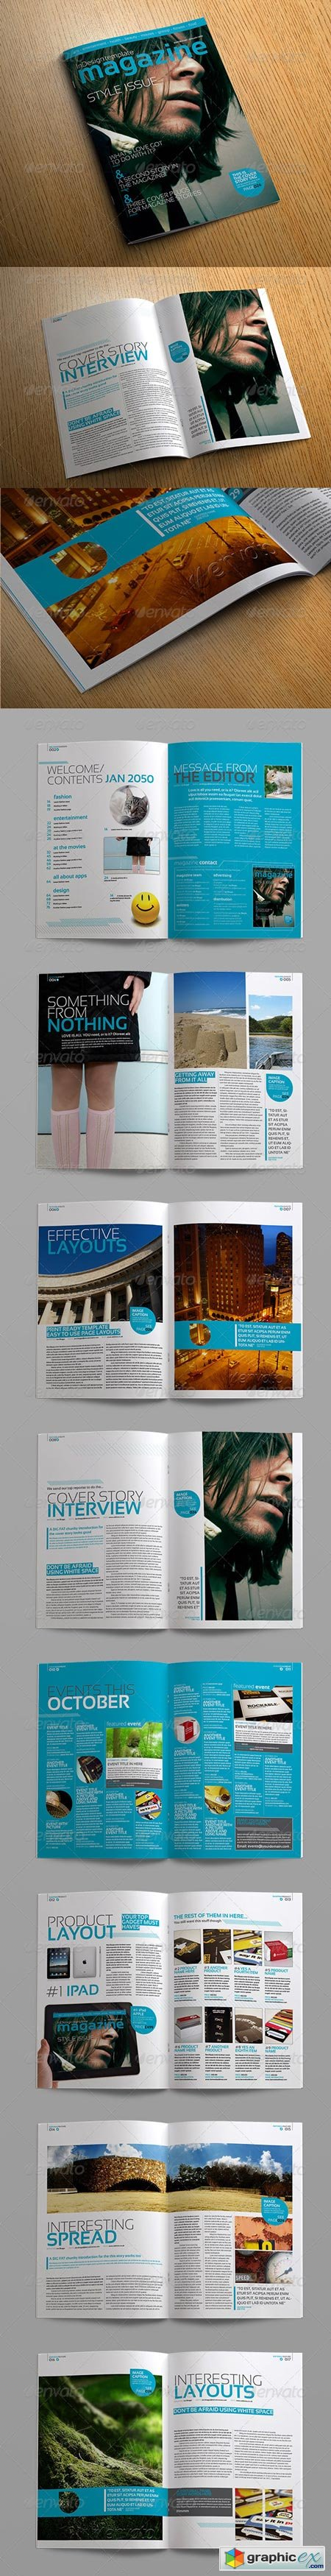 Stylish InDesign Magazine Template 264182